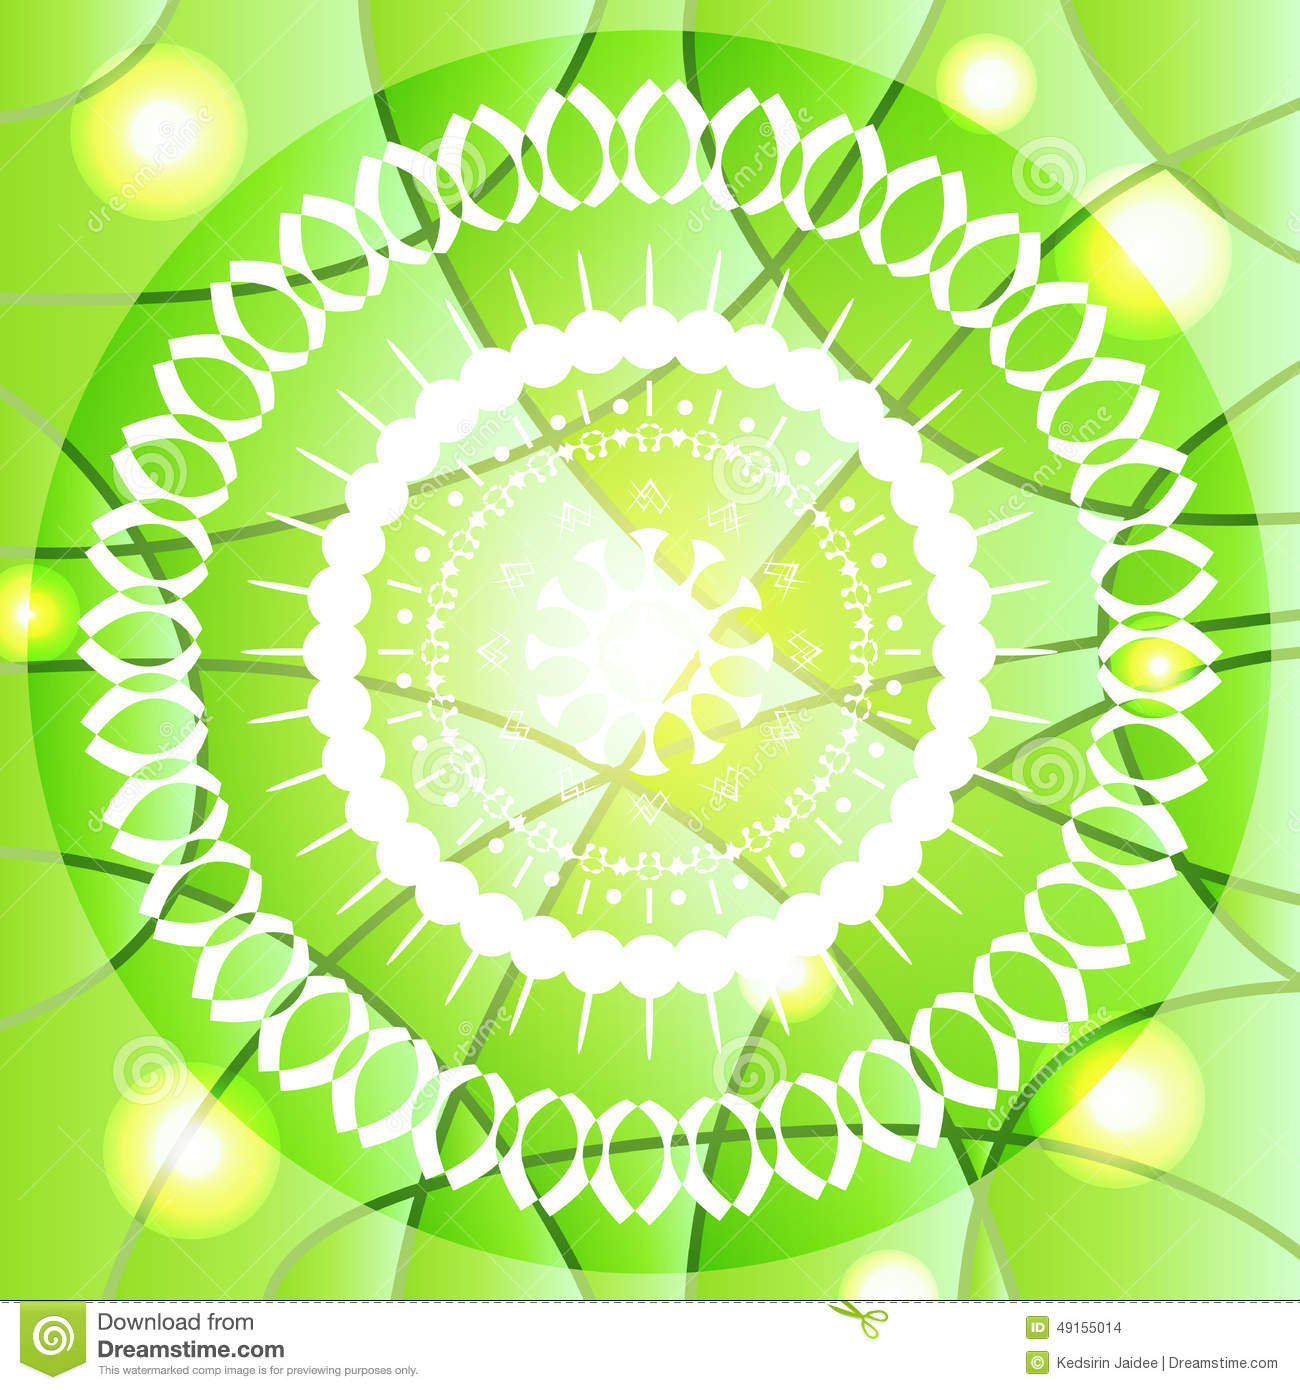 White Abstract Stylized Elements Vector On Light Green Background.